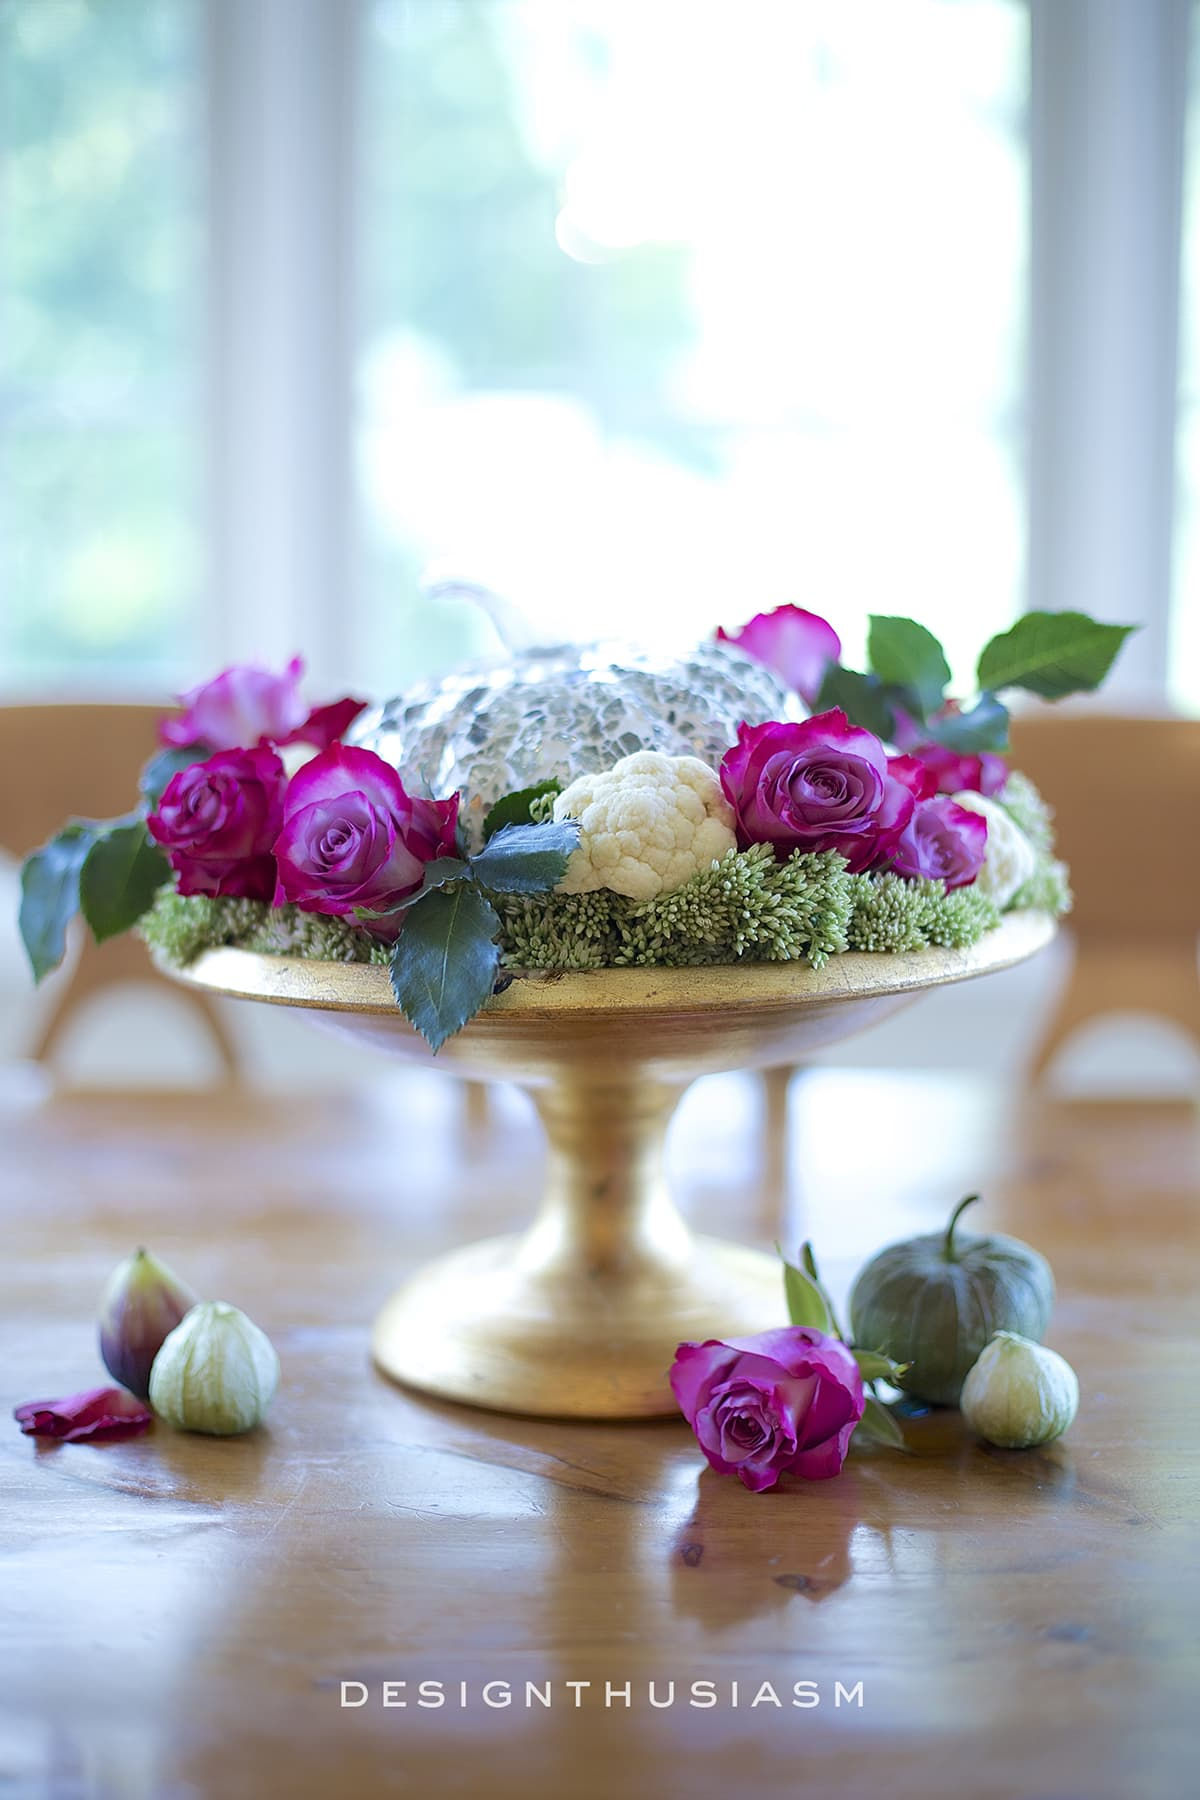 Fall Centerpiece from Designthusiasm